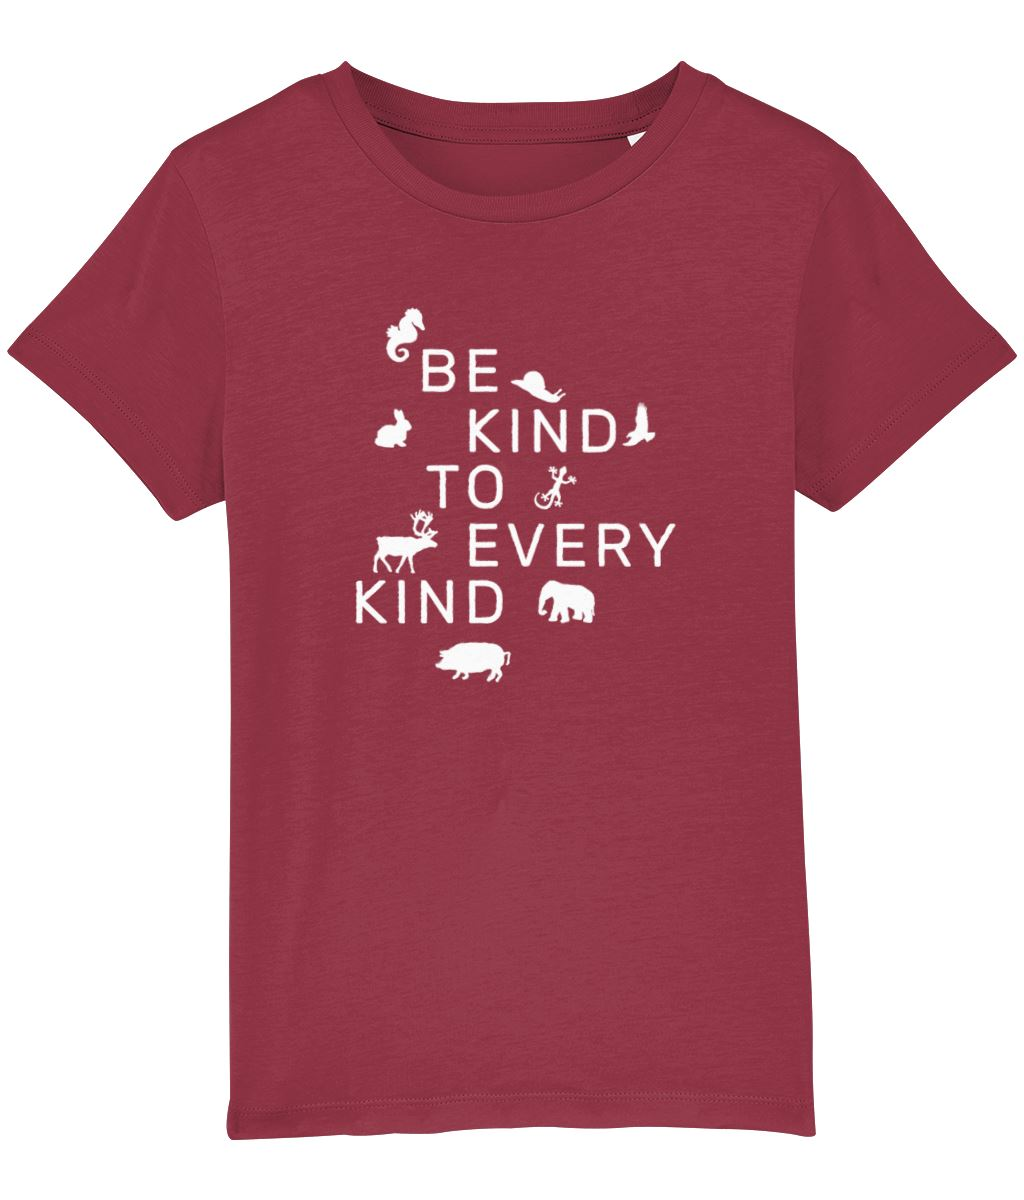 """Be Kind To Every Kind"" Children's Vegan T-Shirt (Unisex) Clothing Vegan Original Red 3-4 years"